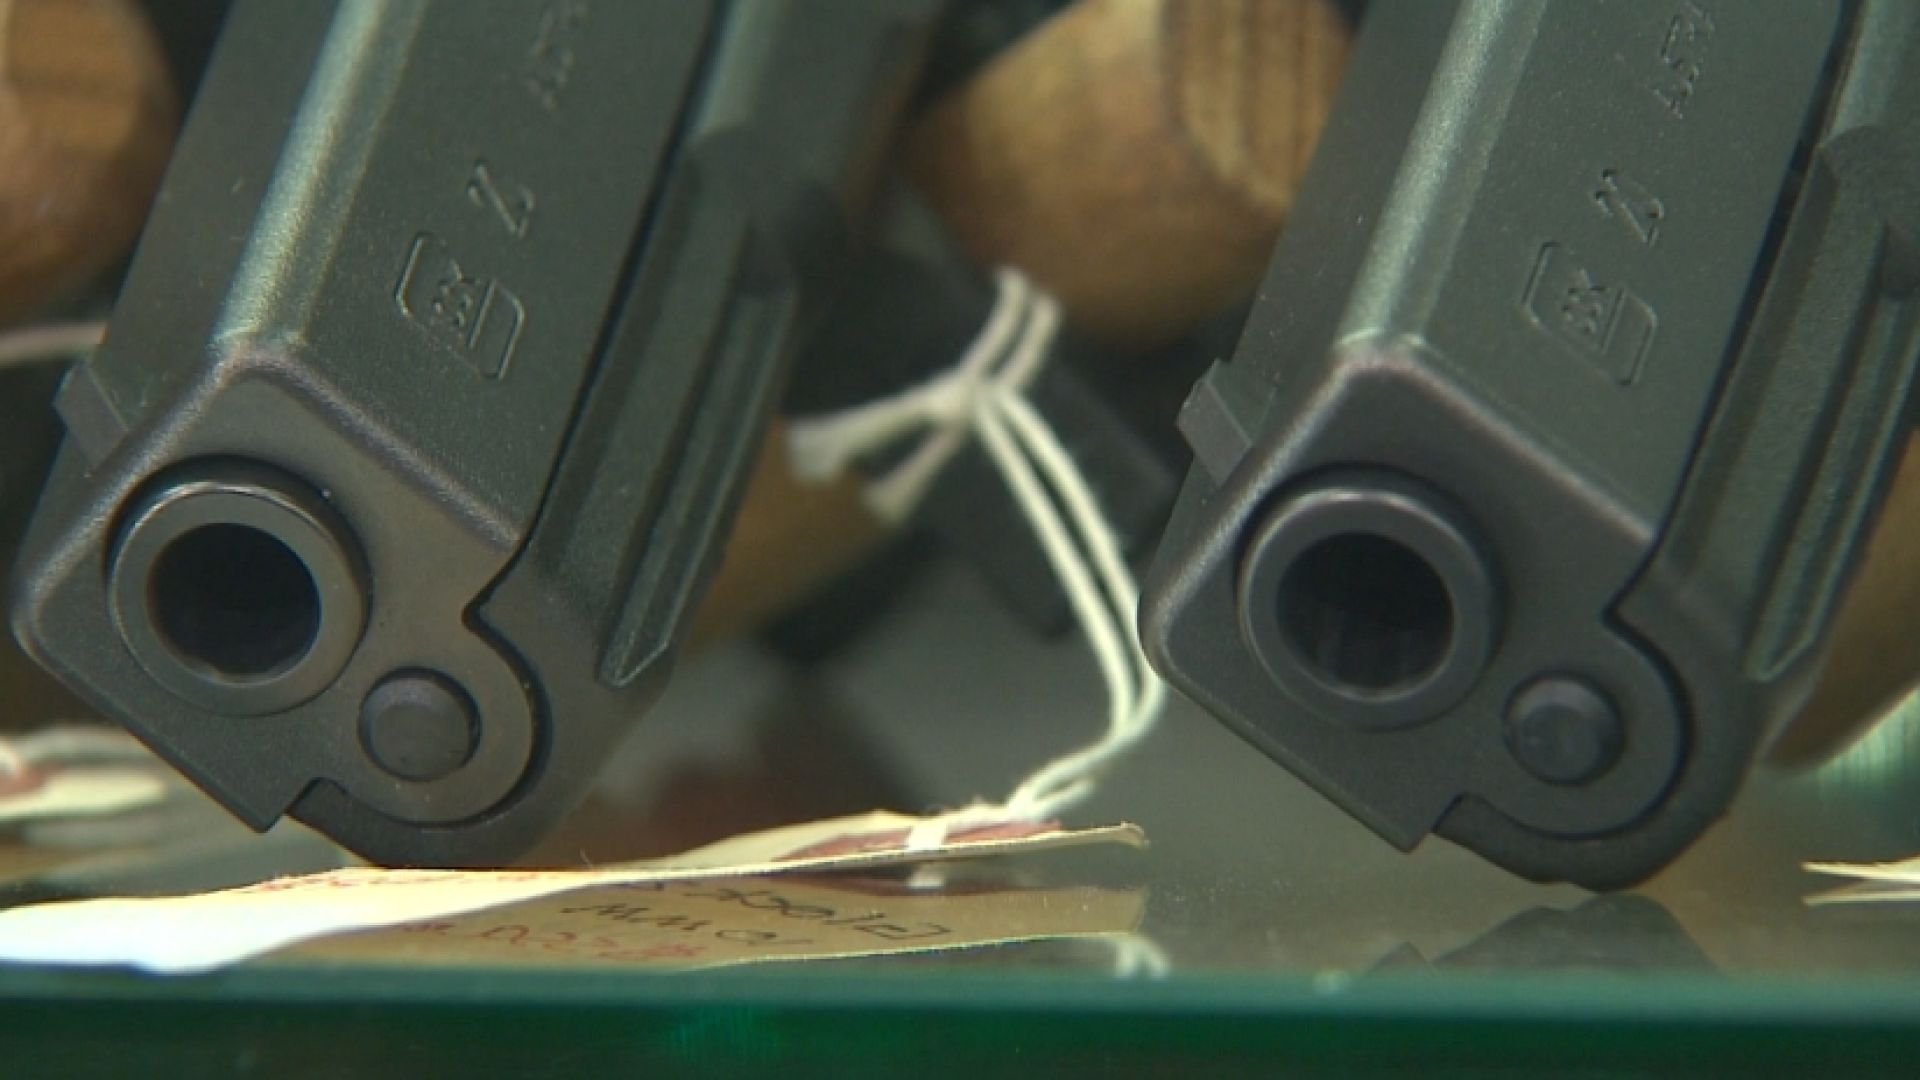 A new law in Washington state aims to crack down on the people who attempt to purchase firearms even though they are prohibited because of previous convictions, no-contact orders, or mental illness.